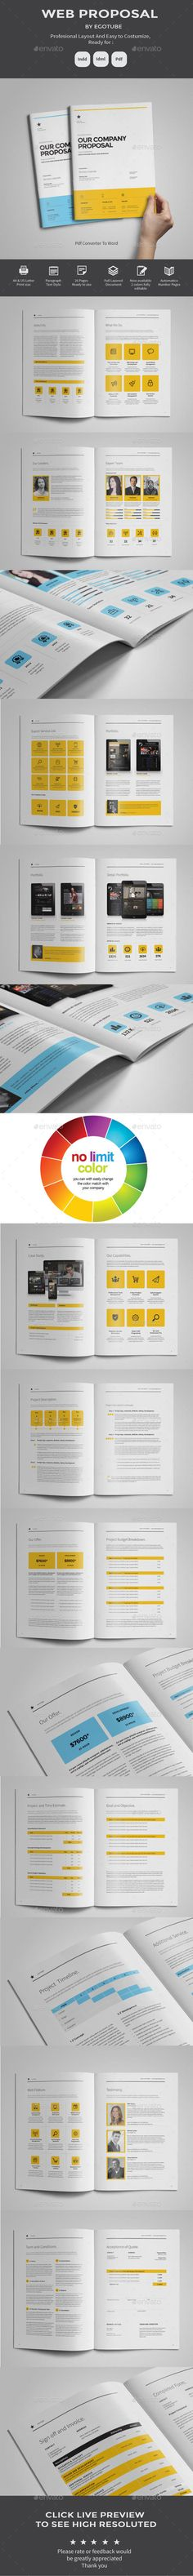 Indesign Business Proposal Template Template Pinterest - project proposal sample